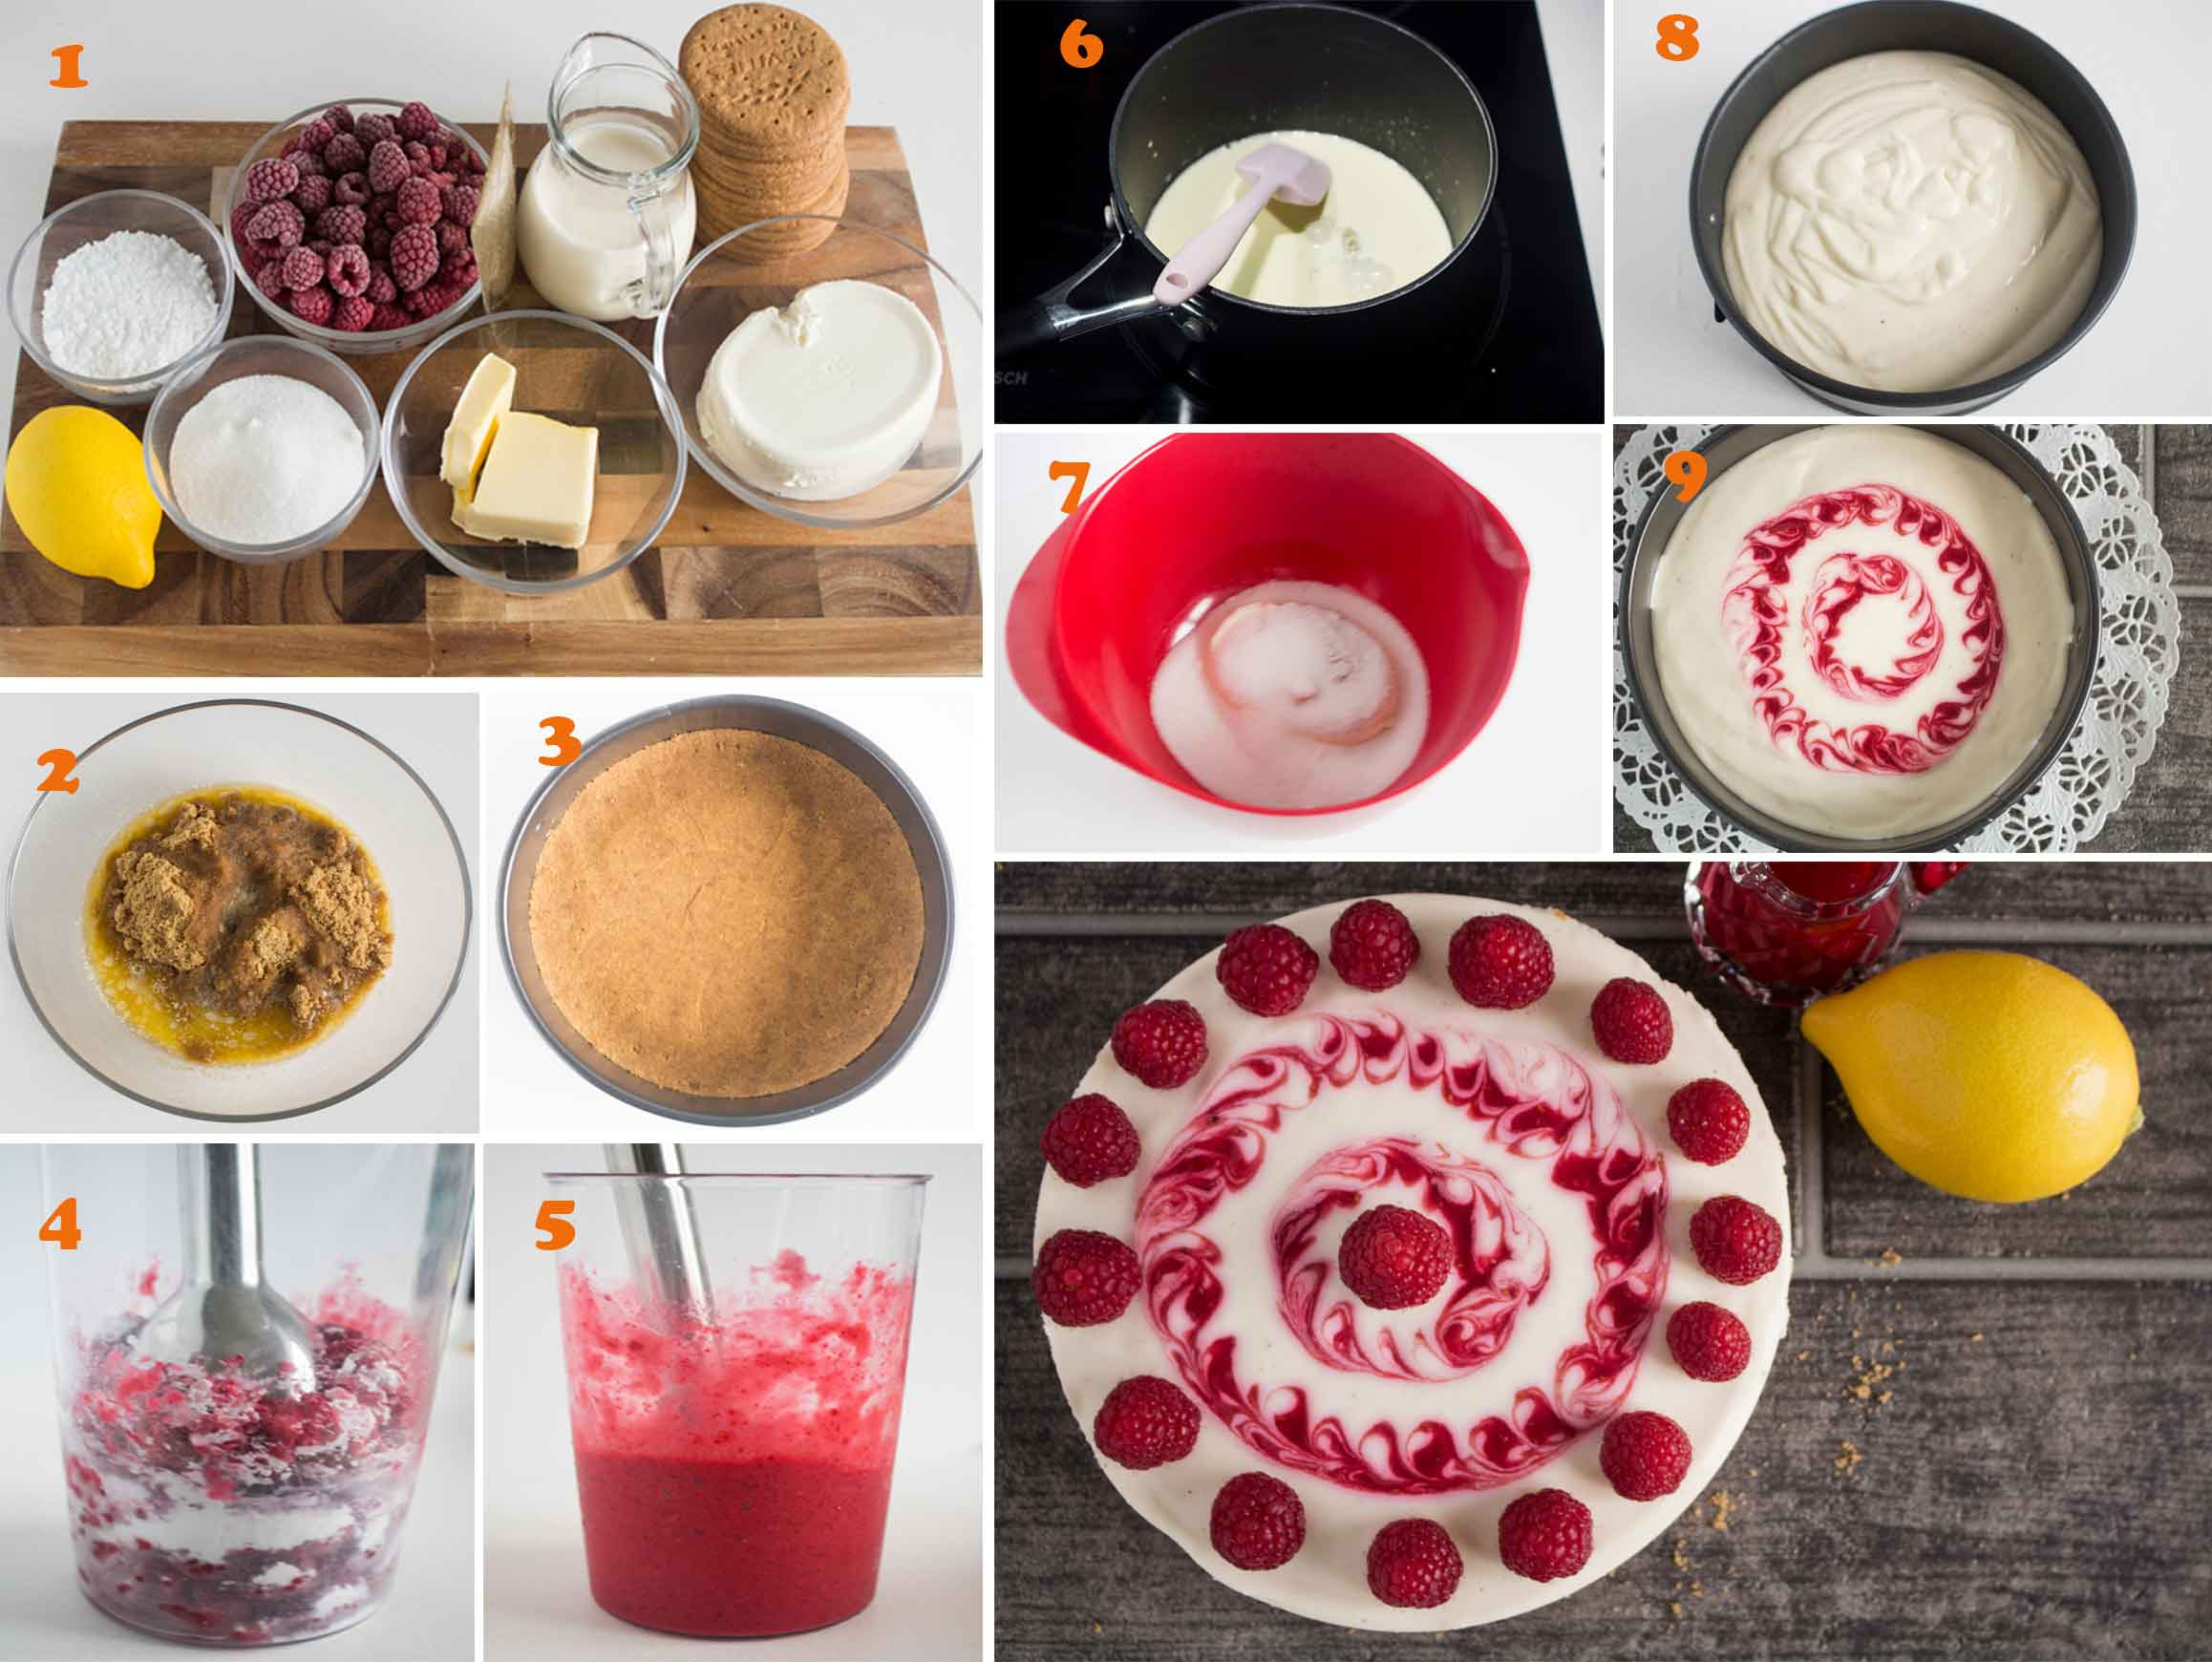 An image showing the steps on how to make lemon-raspberry no bake cheesecake|foodandjourneys.net